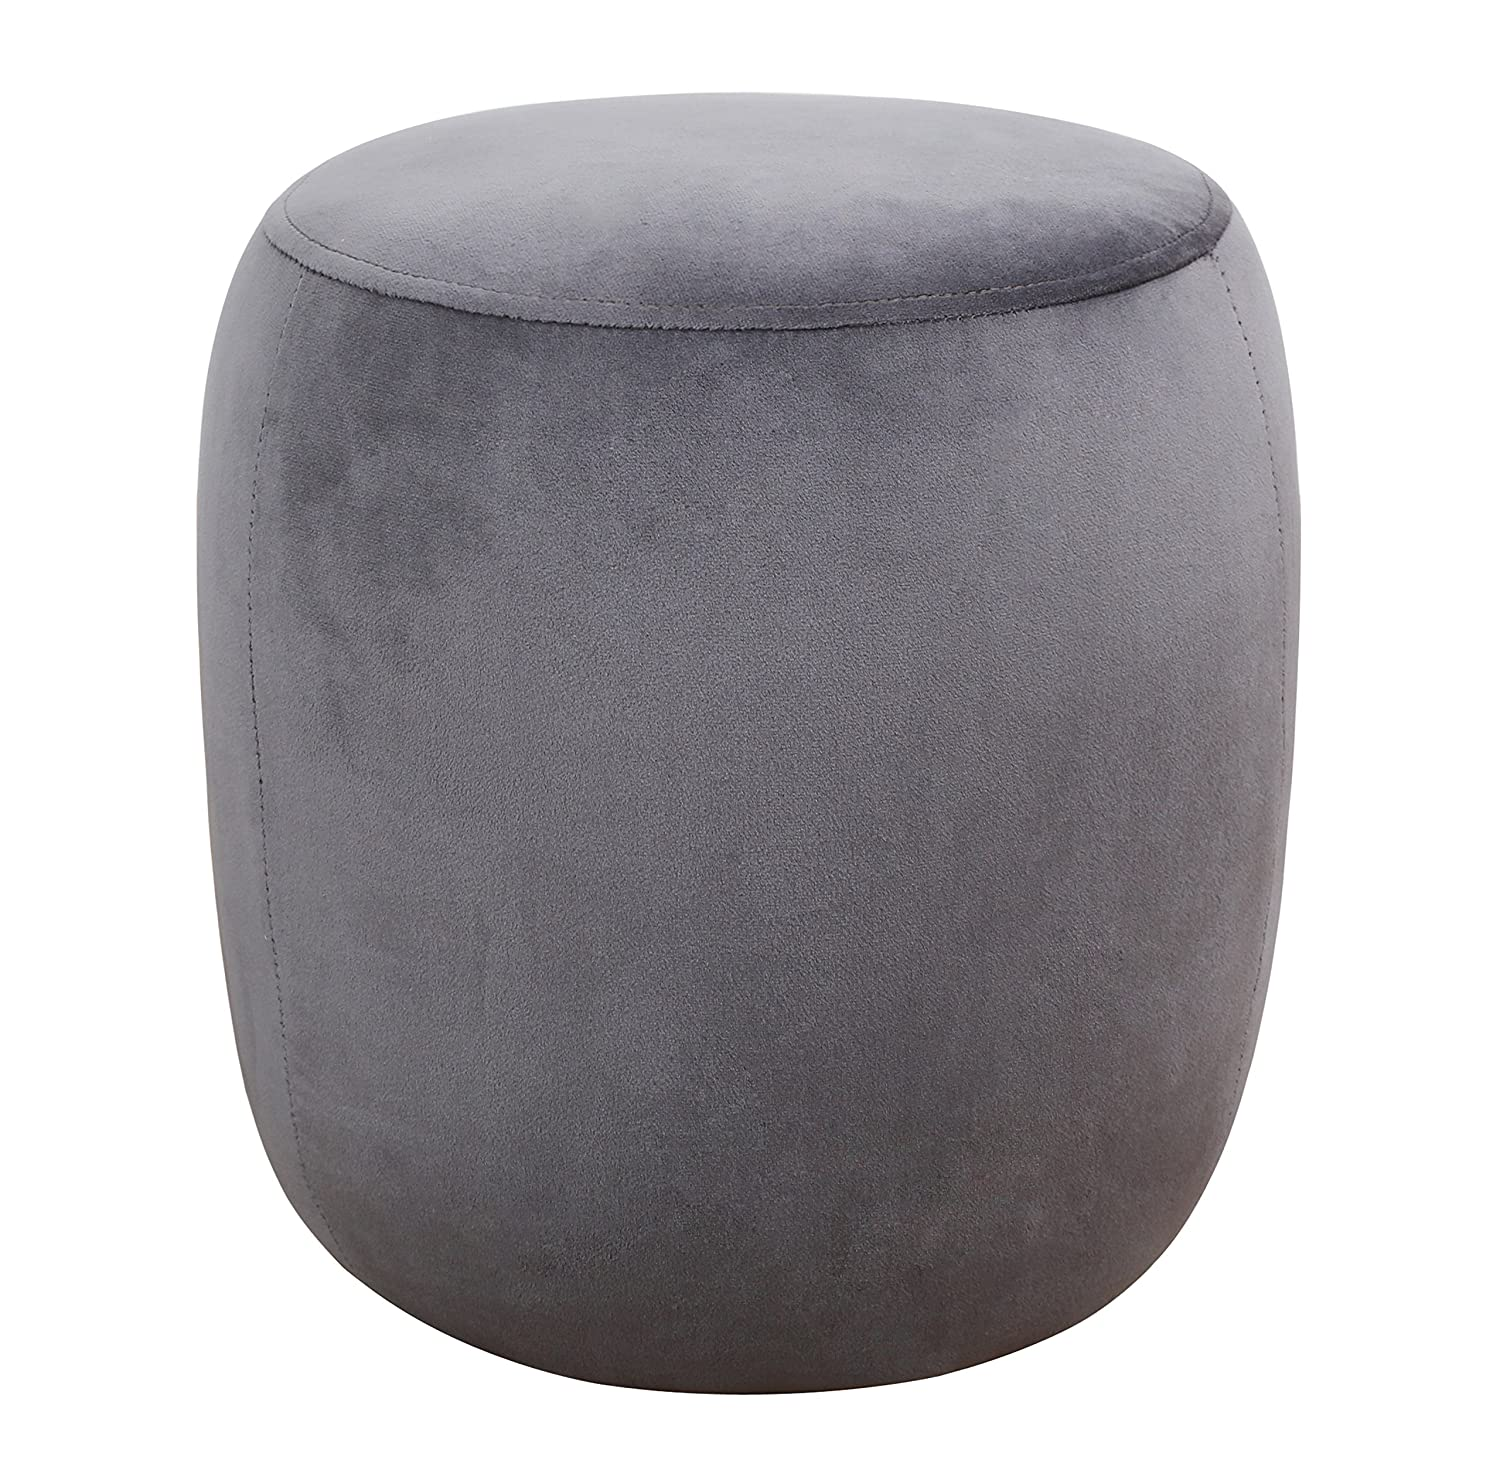 Outstanding Tov Furniture Tov Oc3816 The Willow Collection Modern Velvet Upholstered Round Ottoman Grey Caraccident5 Cool Chair Designs And Ideas Caraccident5Info